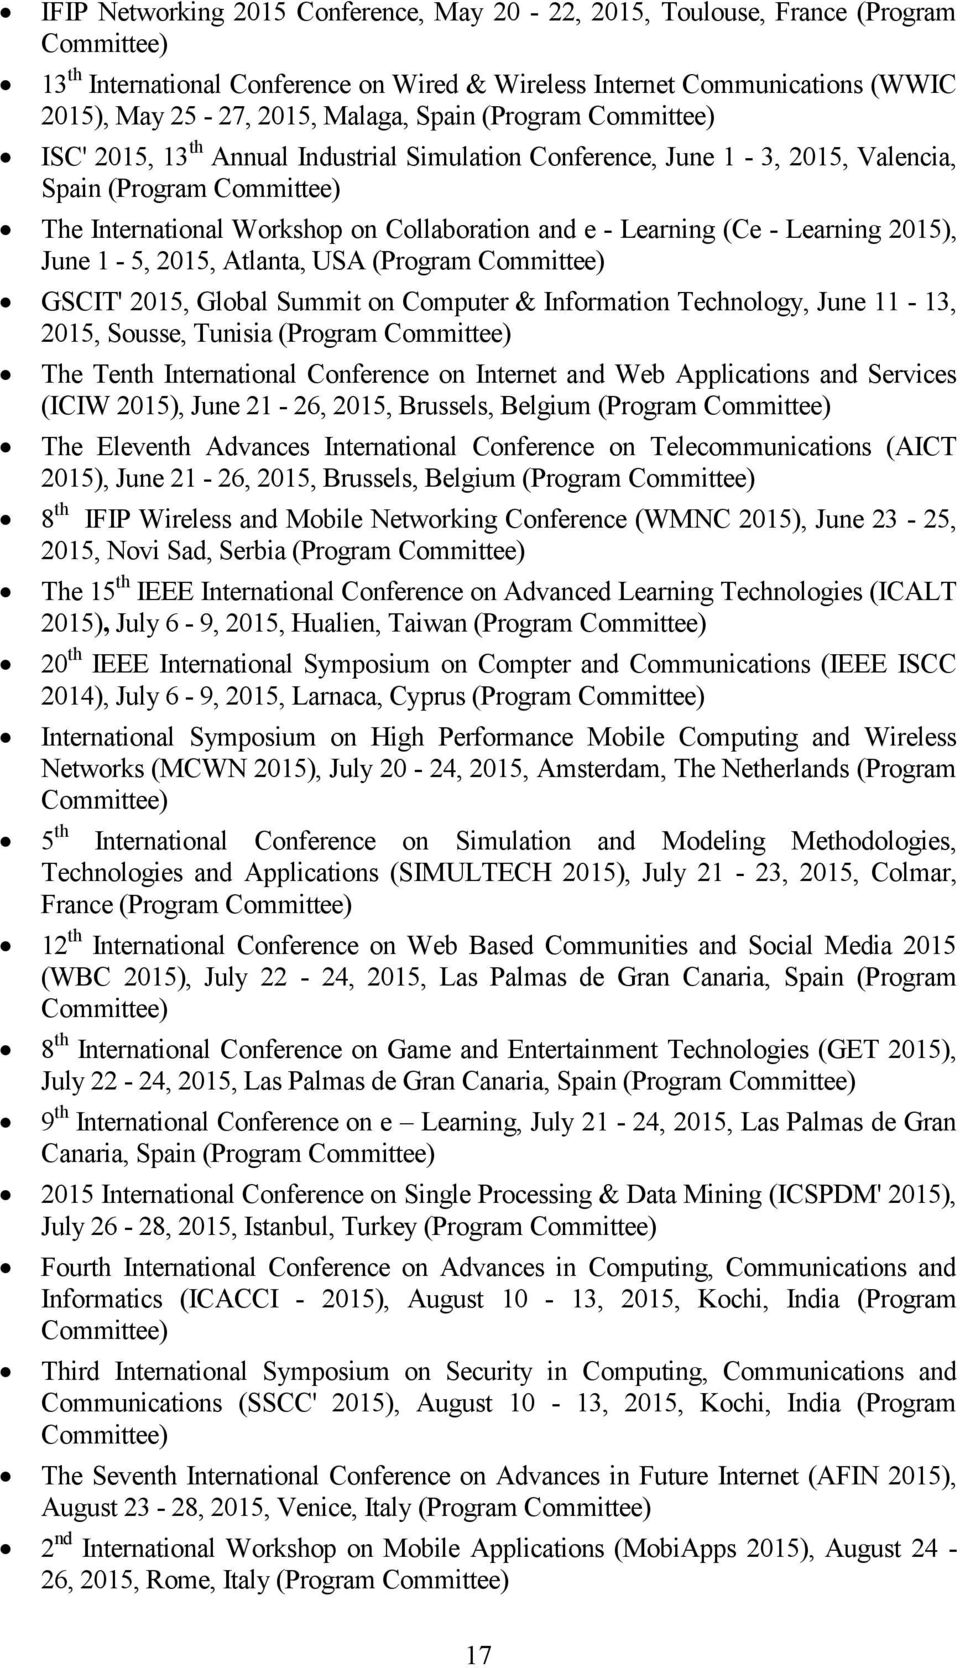 1-5, 2015, Atlanta, USA (Program GSCIT' 2015, Global Summit on Computer & Information Technology, June 11-13, 2015, Sousse, Tunisia (Program The Tenth International Conference on Internet and Web